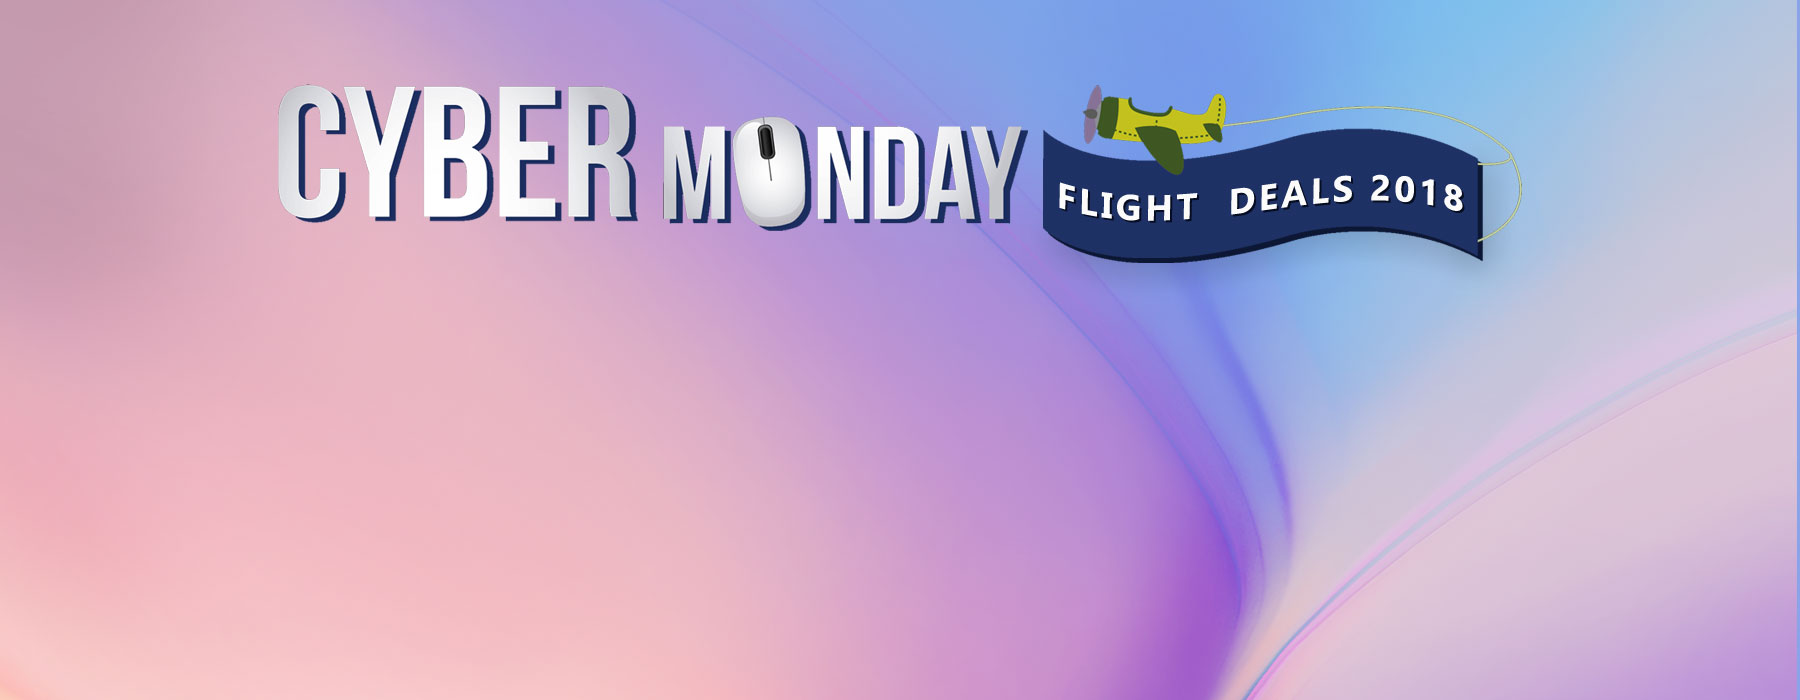 Cyber Monday Flight Deals 2018